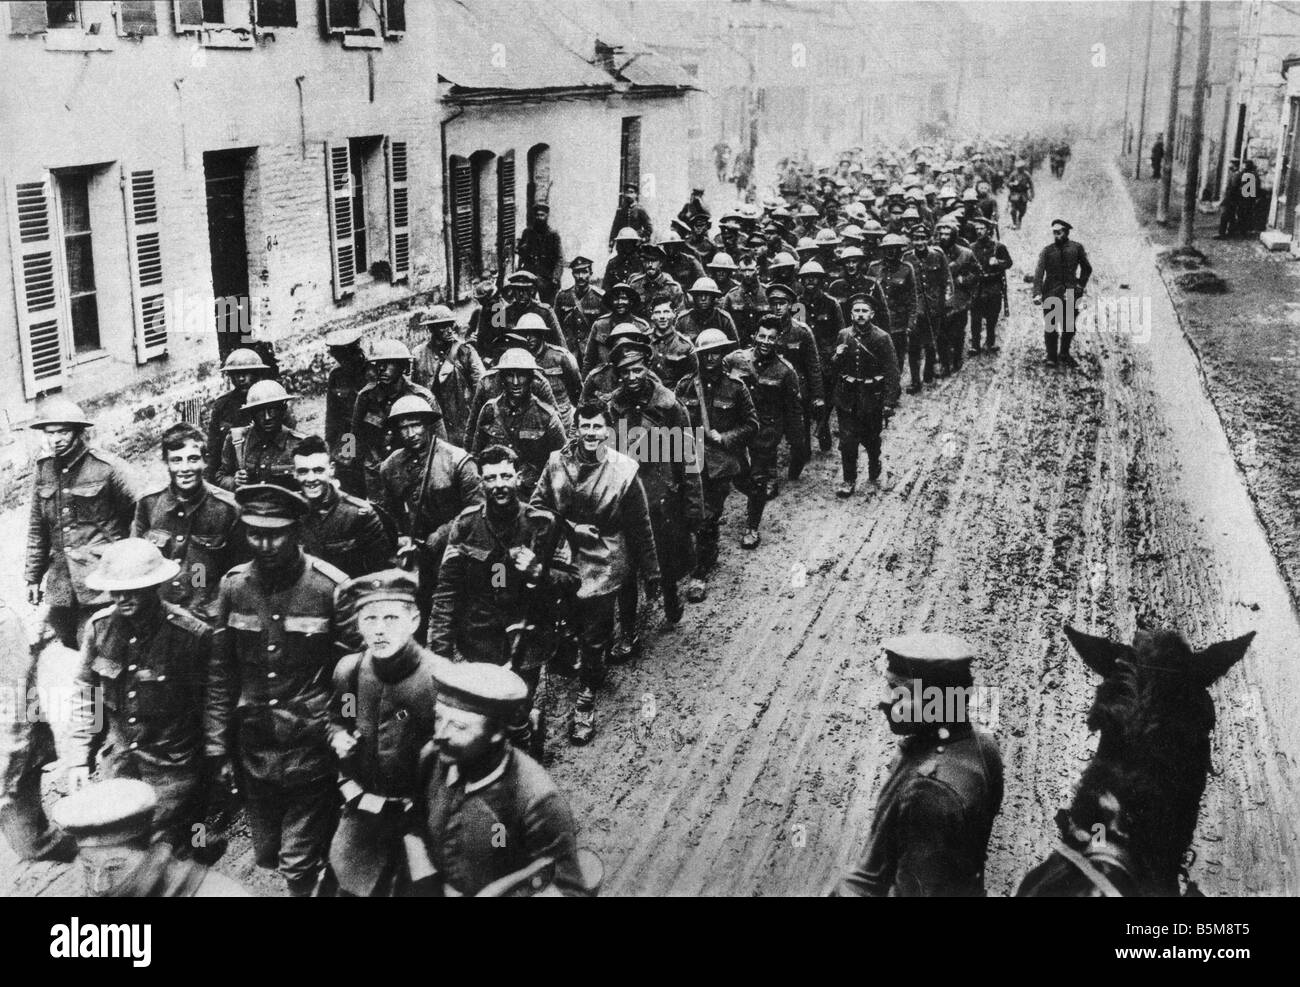 2 G55 K1 1916 47 WWI English Prisoners of War History World War One Prisoners of War Arrival of the first British - Stock Image